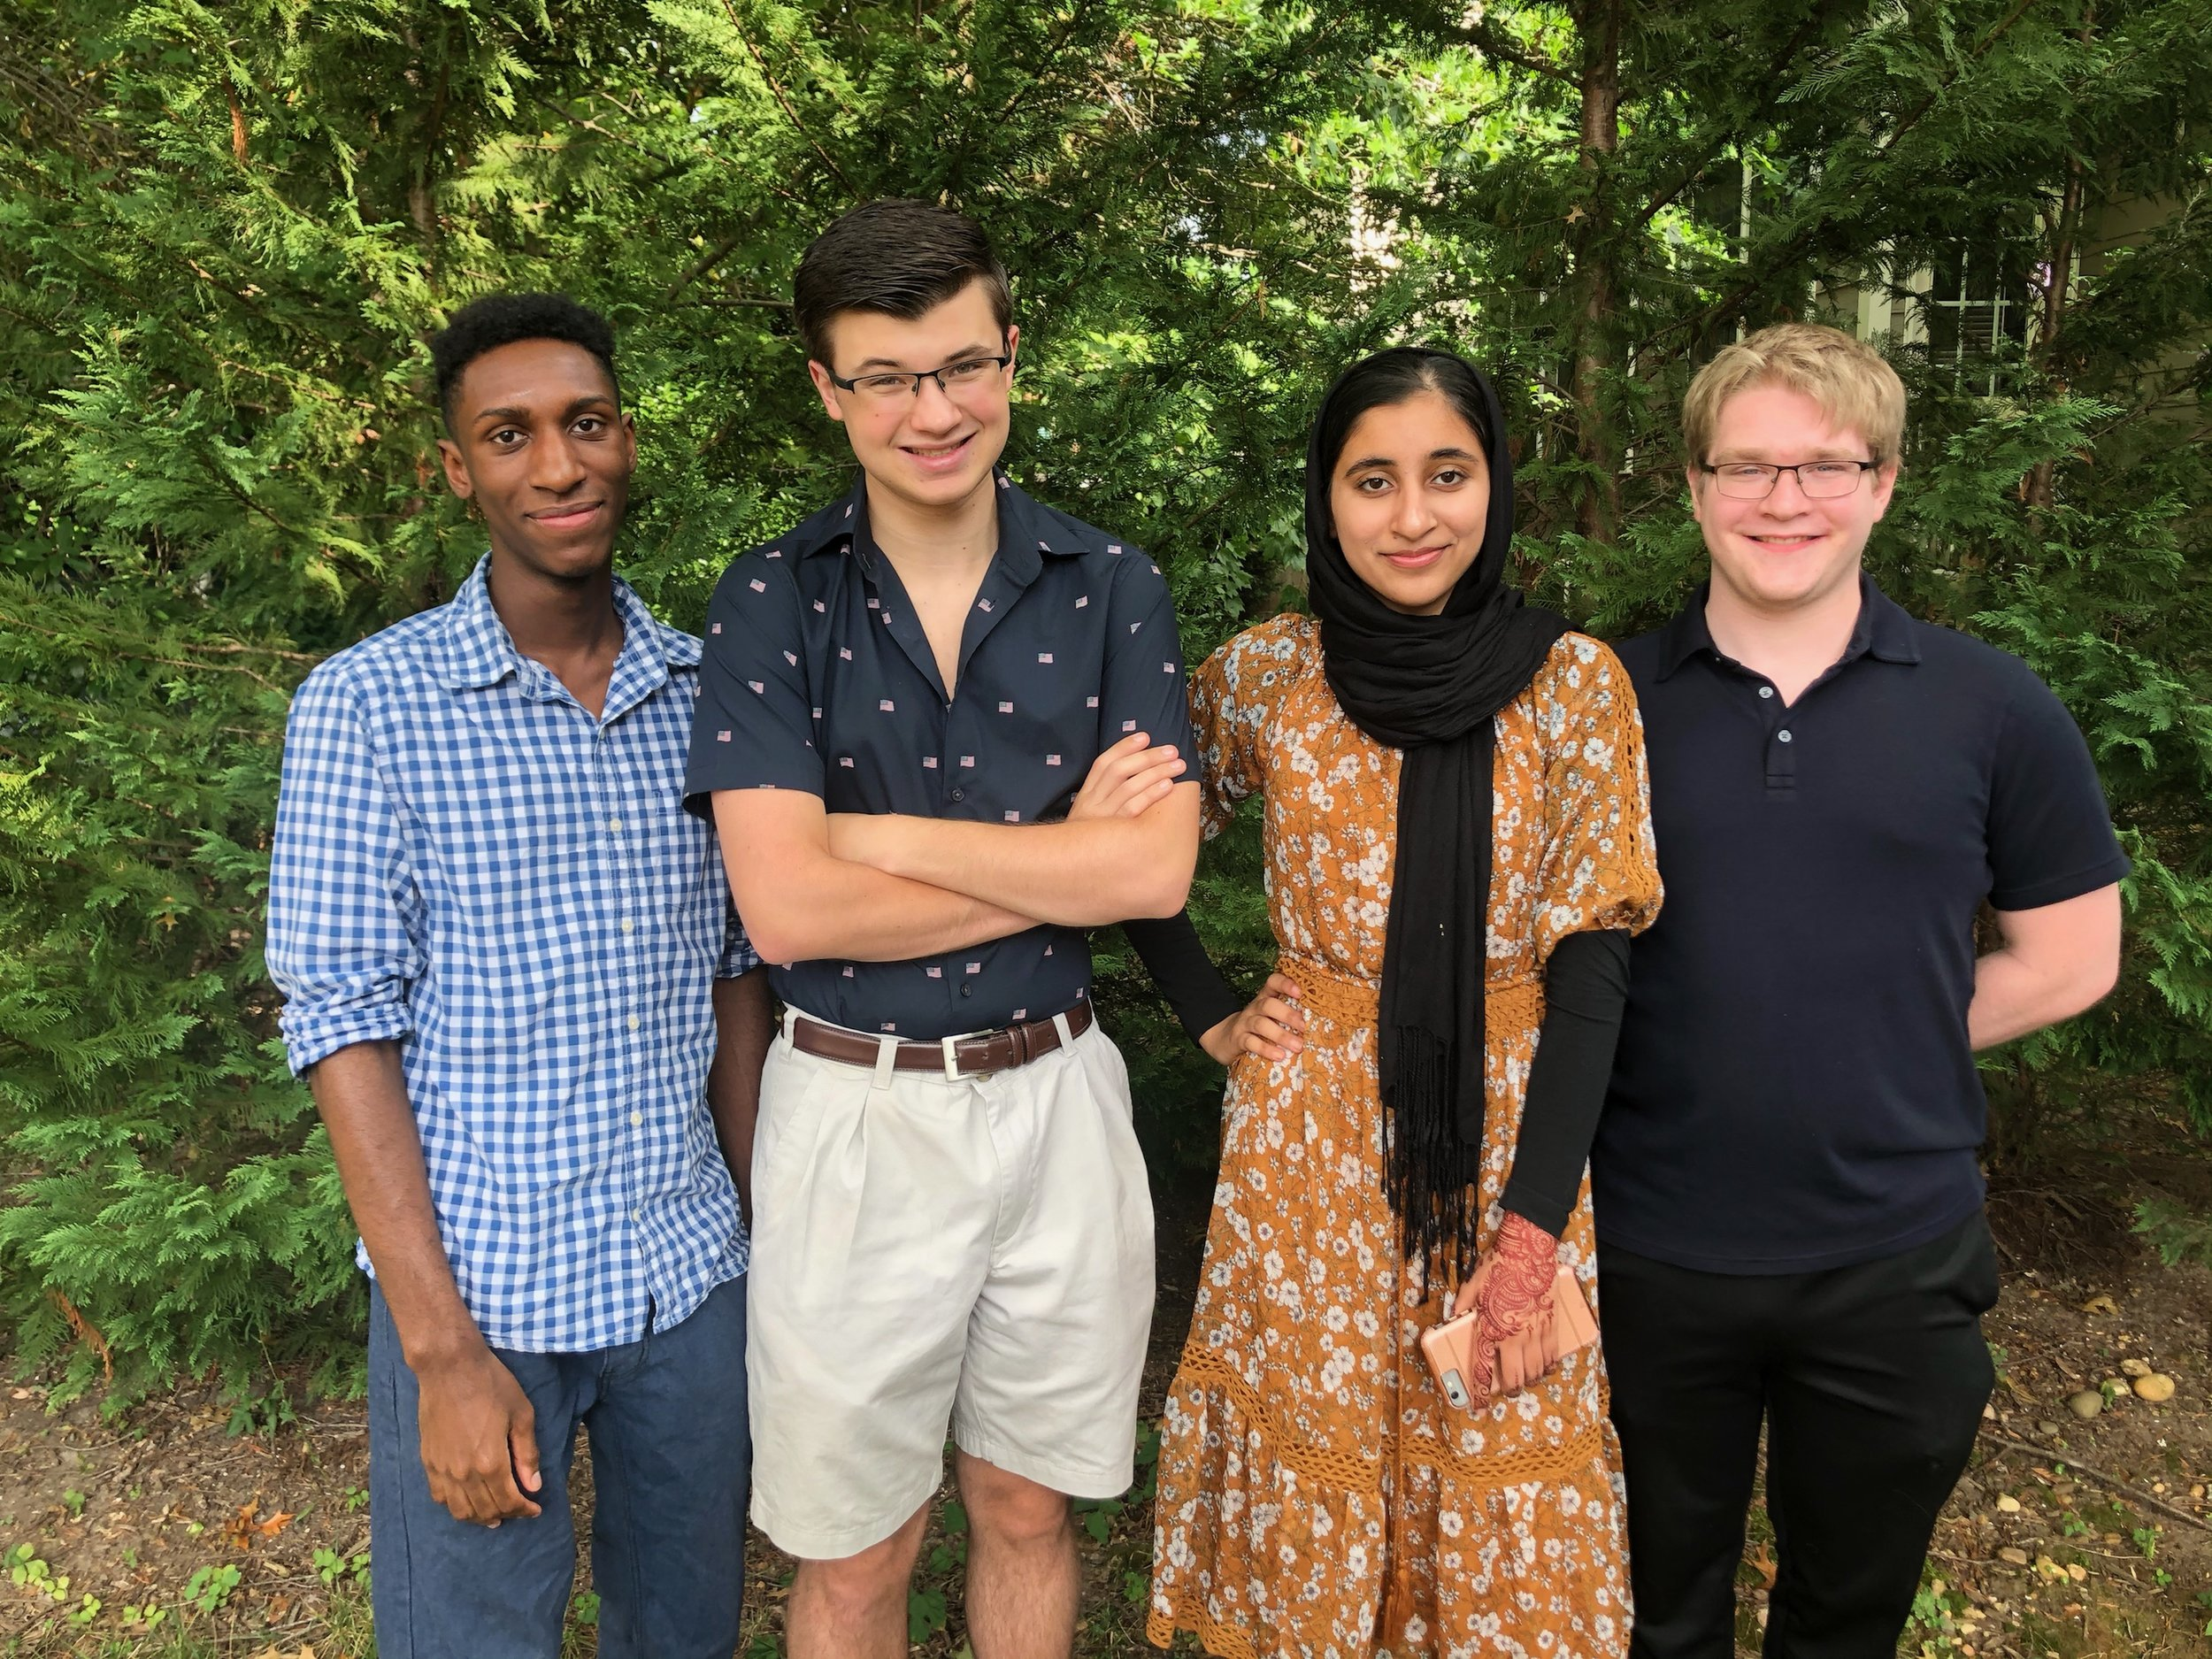 Our Team - Our founders hail from Alexandria, Virginia, a stone's toss from the nation's capital. All current or former students of West Potomac High School, the four share a close friendship and a mutual desire to make things better.To learn more about our team, click here.To apply for consideration for a position on Homoglobin's full-time staff, please click here.